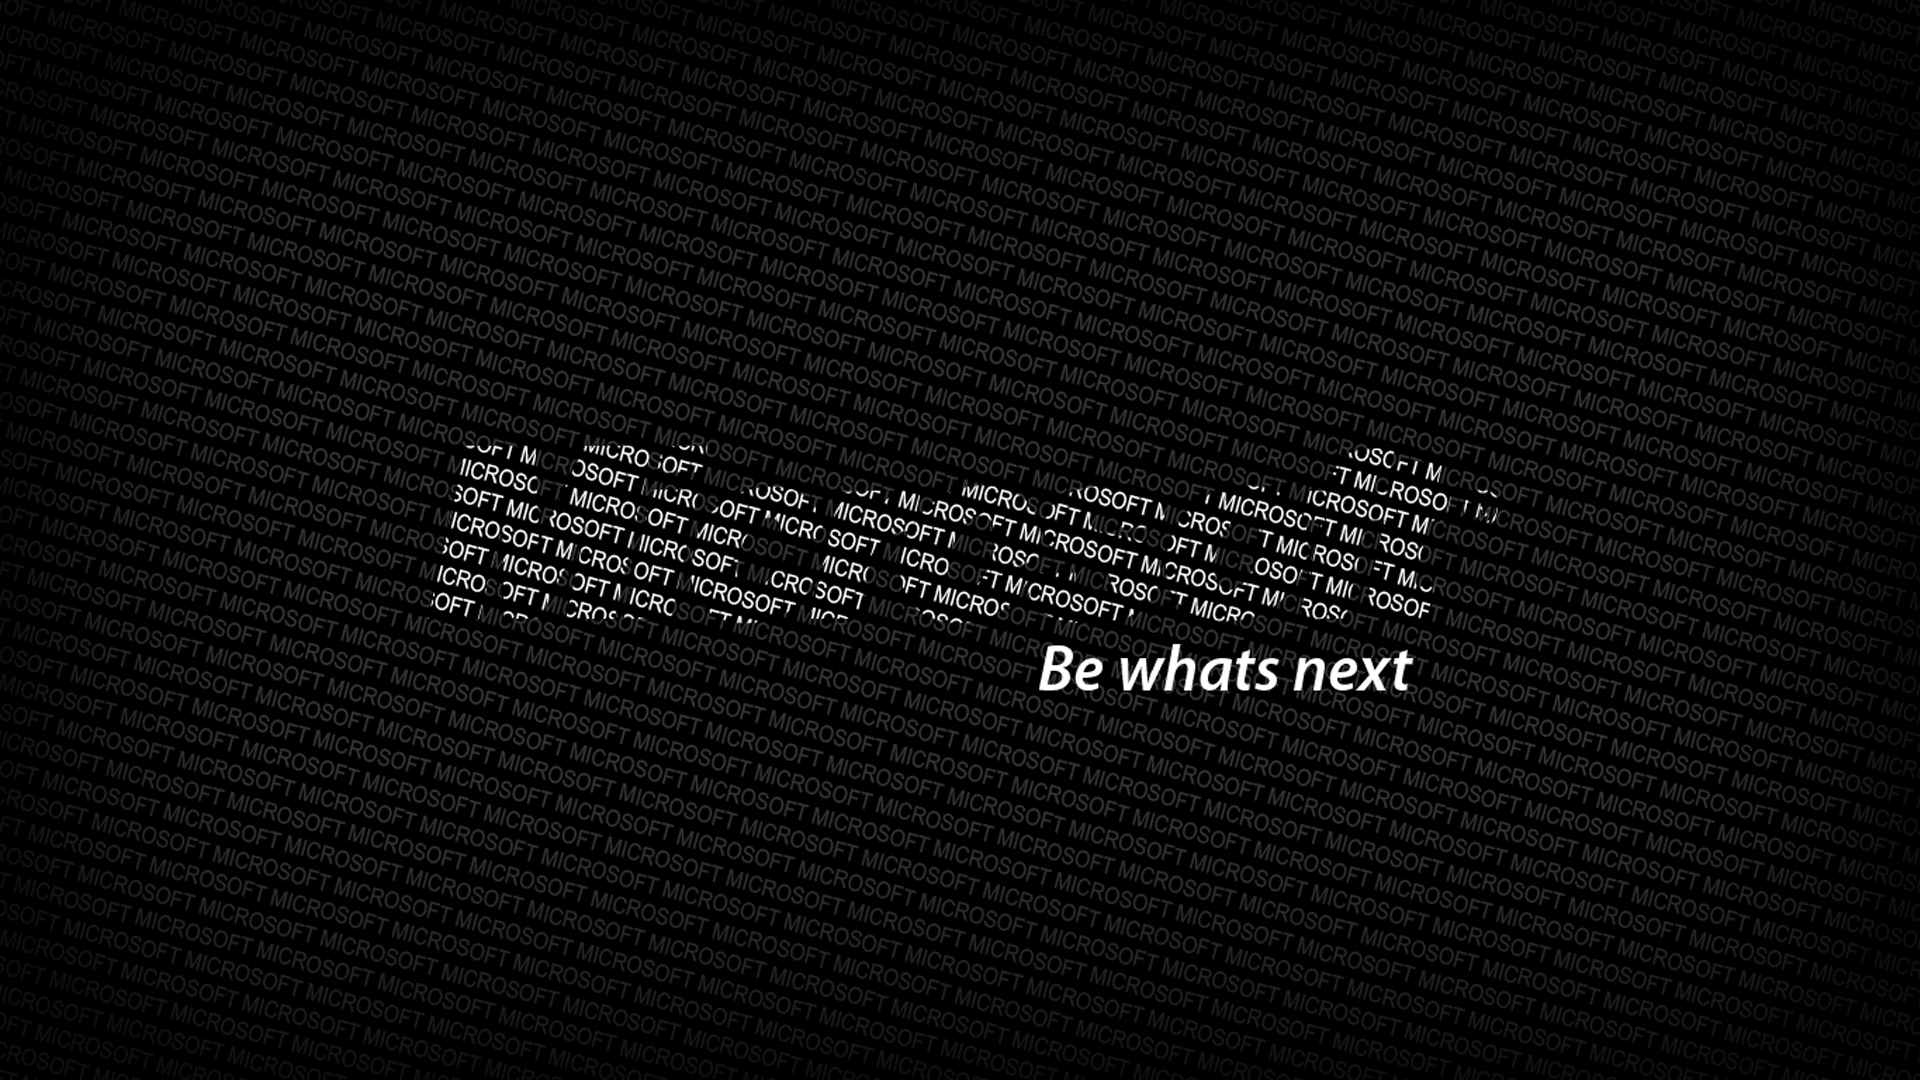 Microsoft Wallpapers-6